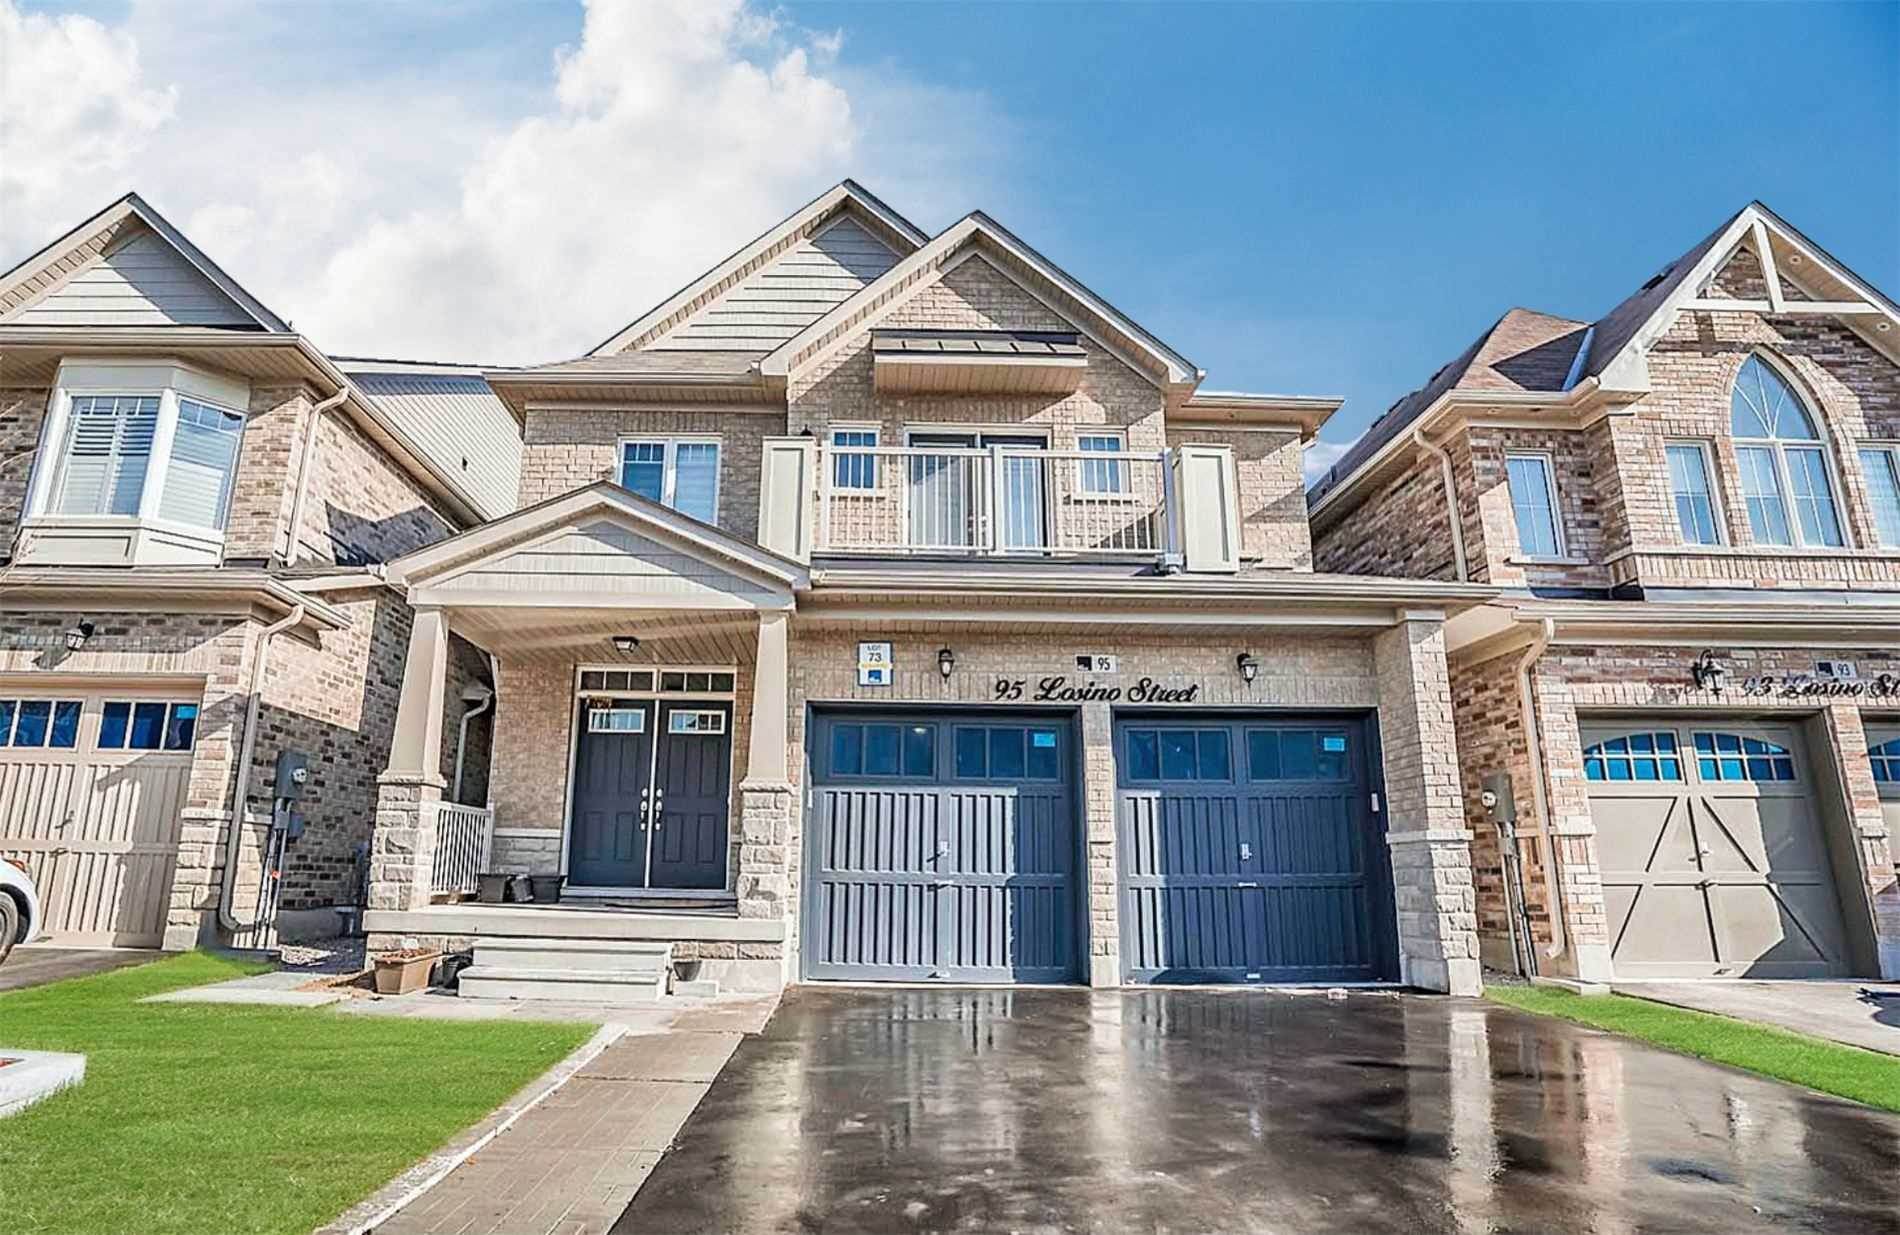 Detached house For Lease In Caledon - 95 Losino St, Caledon, Ontario, Canada L7C3N7 , 2 Bedrooms Bedrooms, ,2 BathroomsBathrooms,Detached,For Lease,Bsmt,Losino